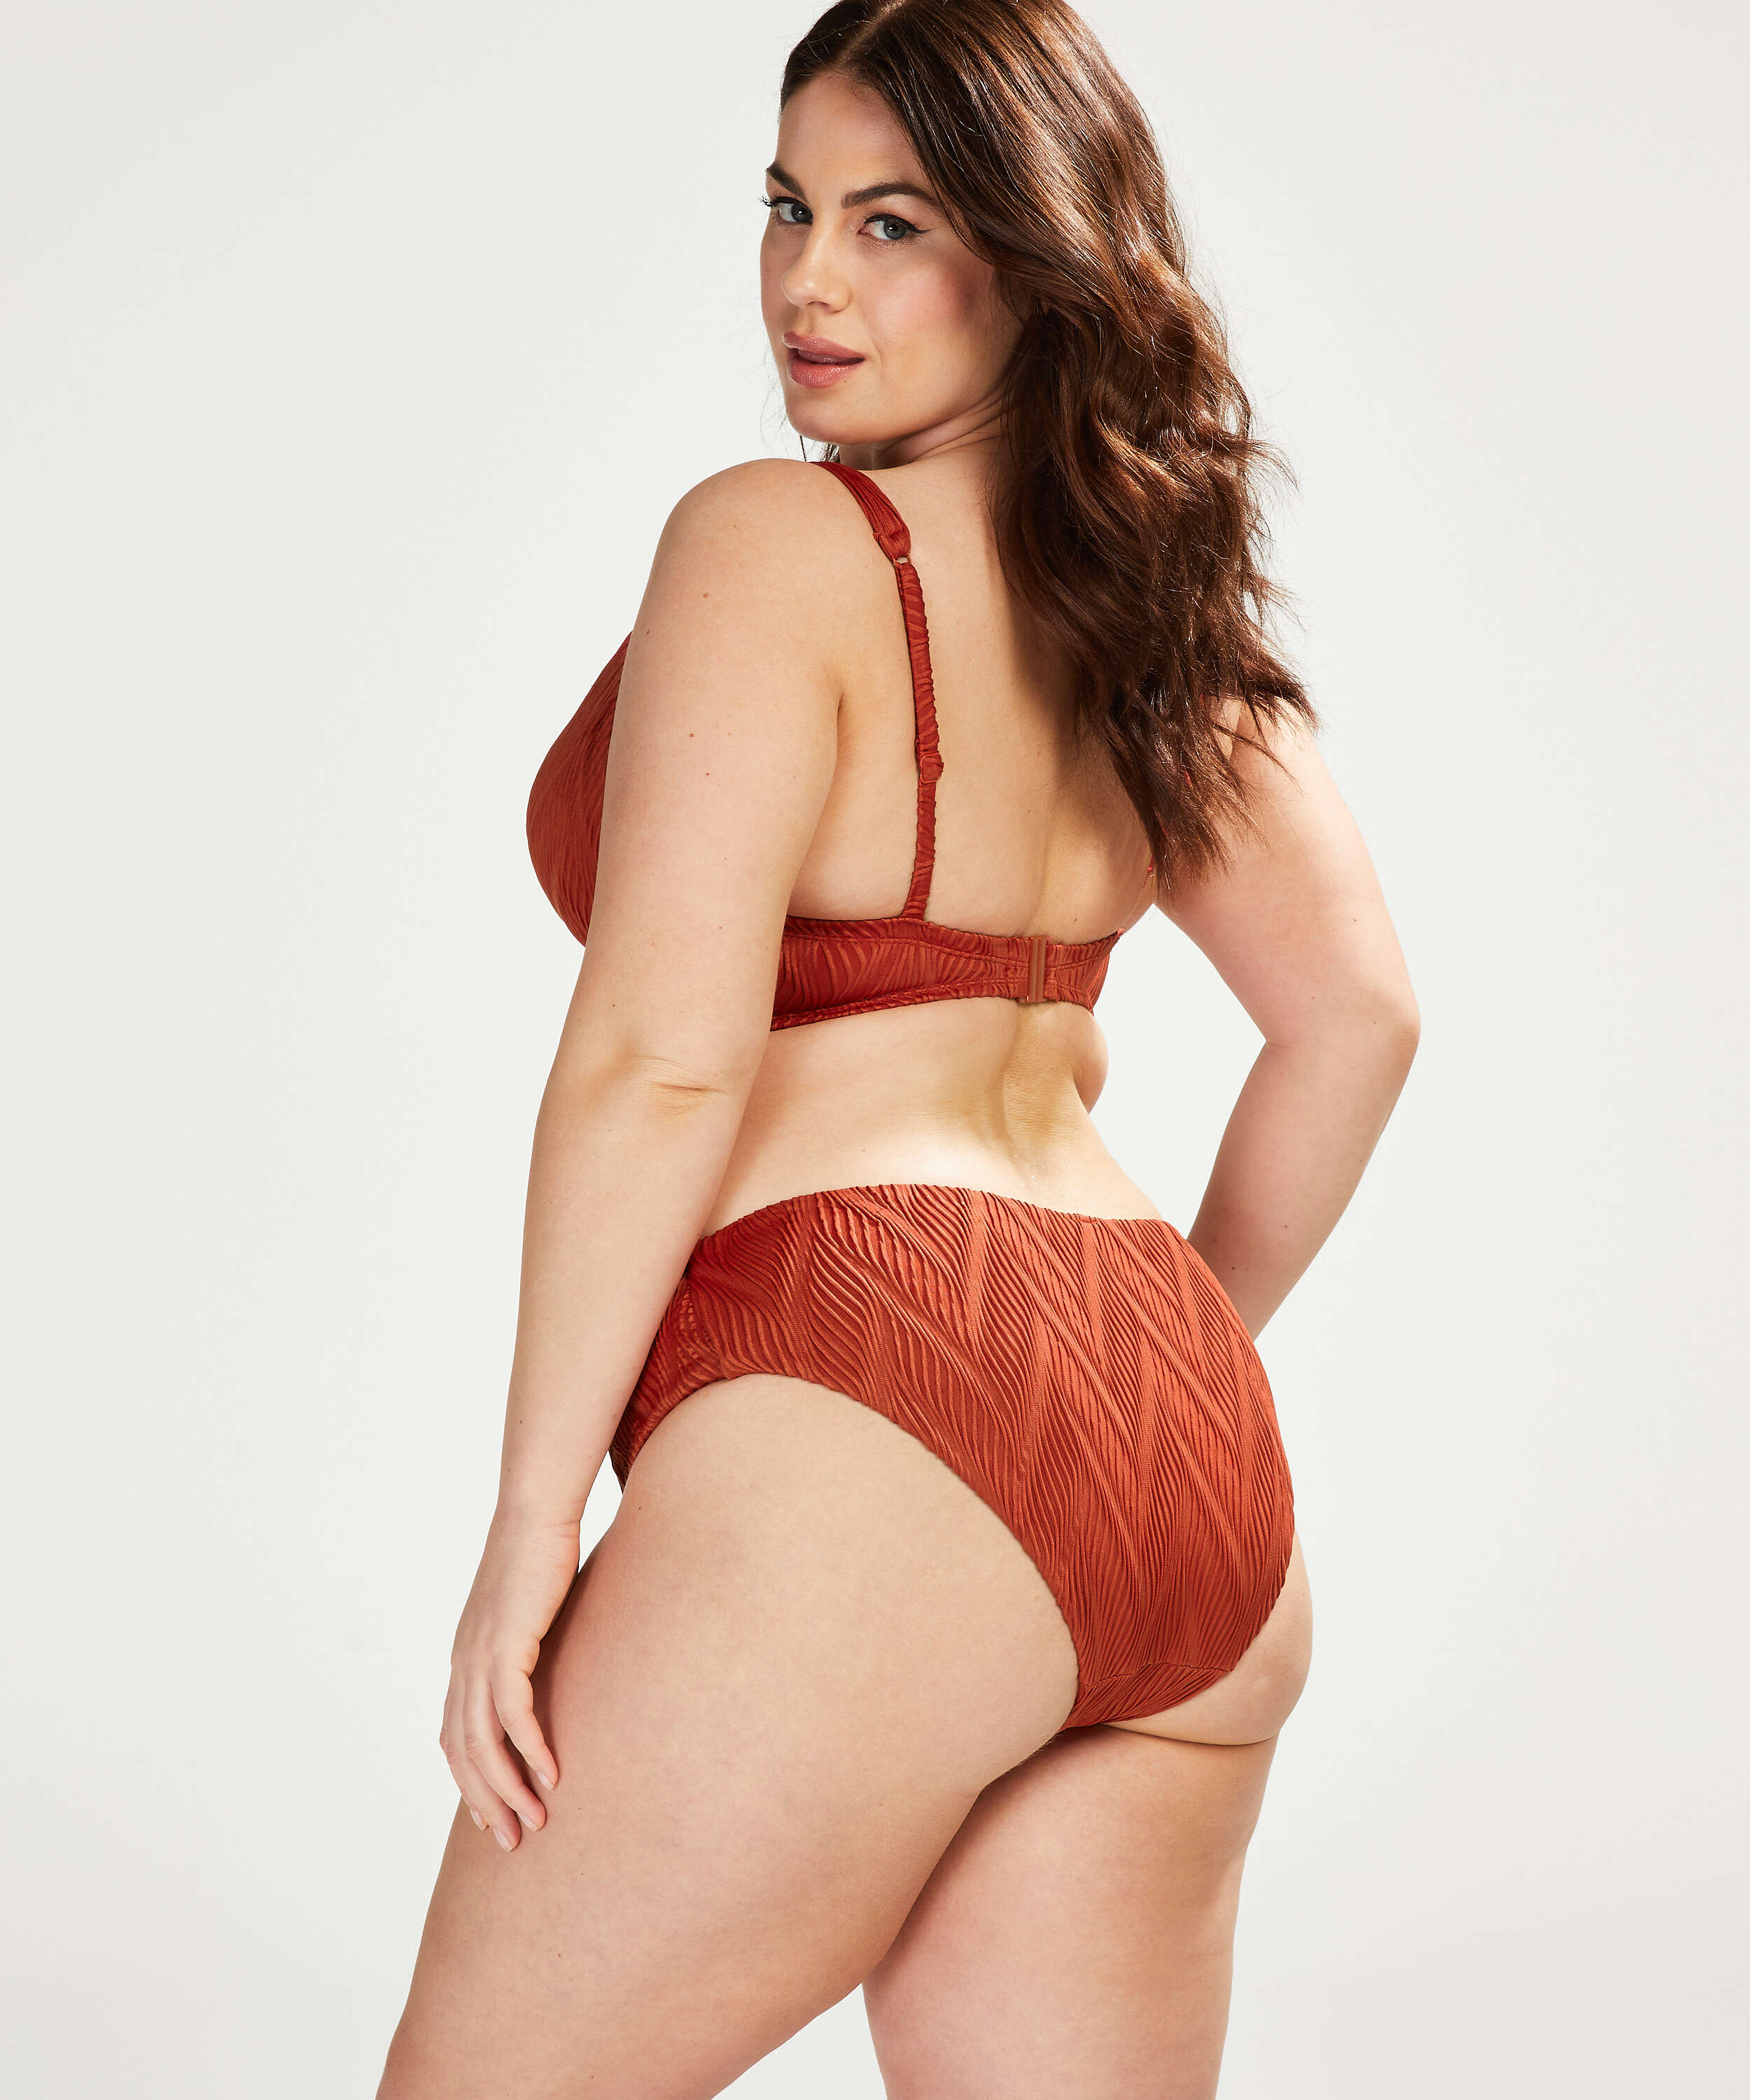 Galibi Rio bikini bottom I AM Danielle, Orange, main